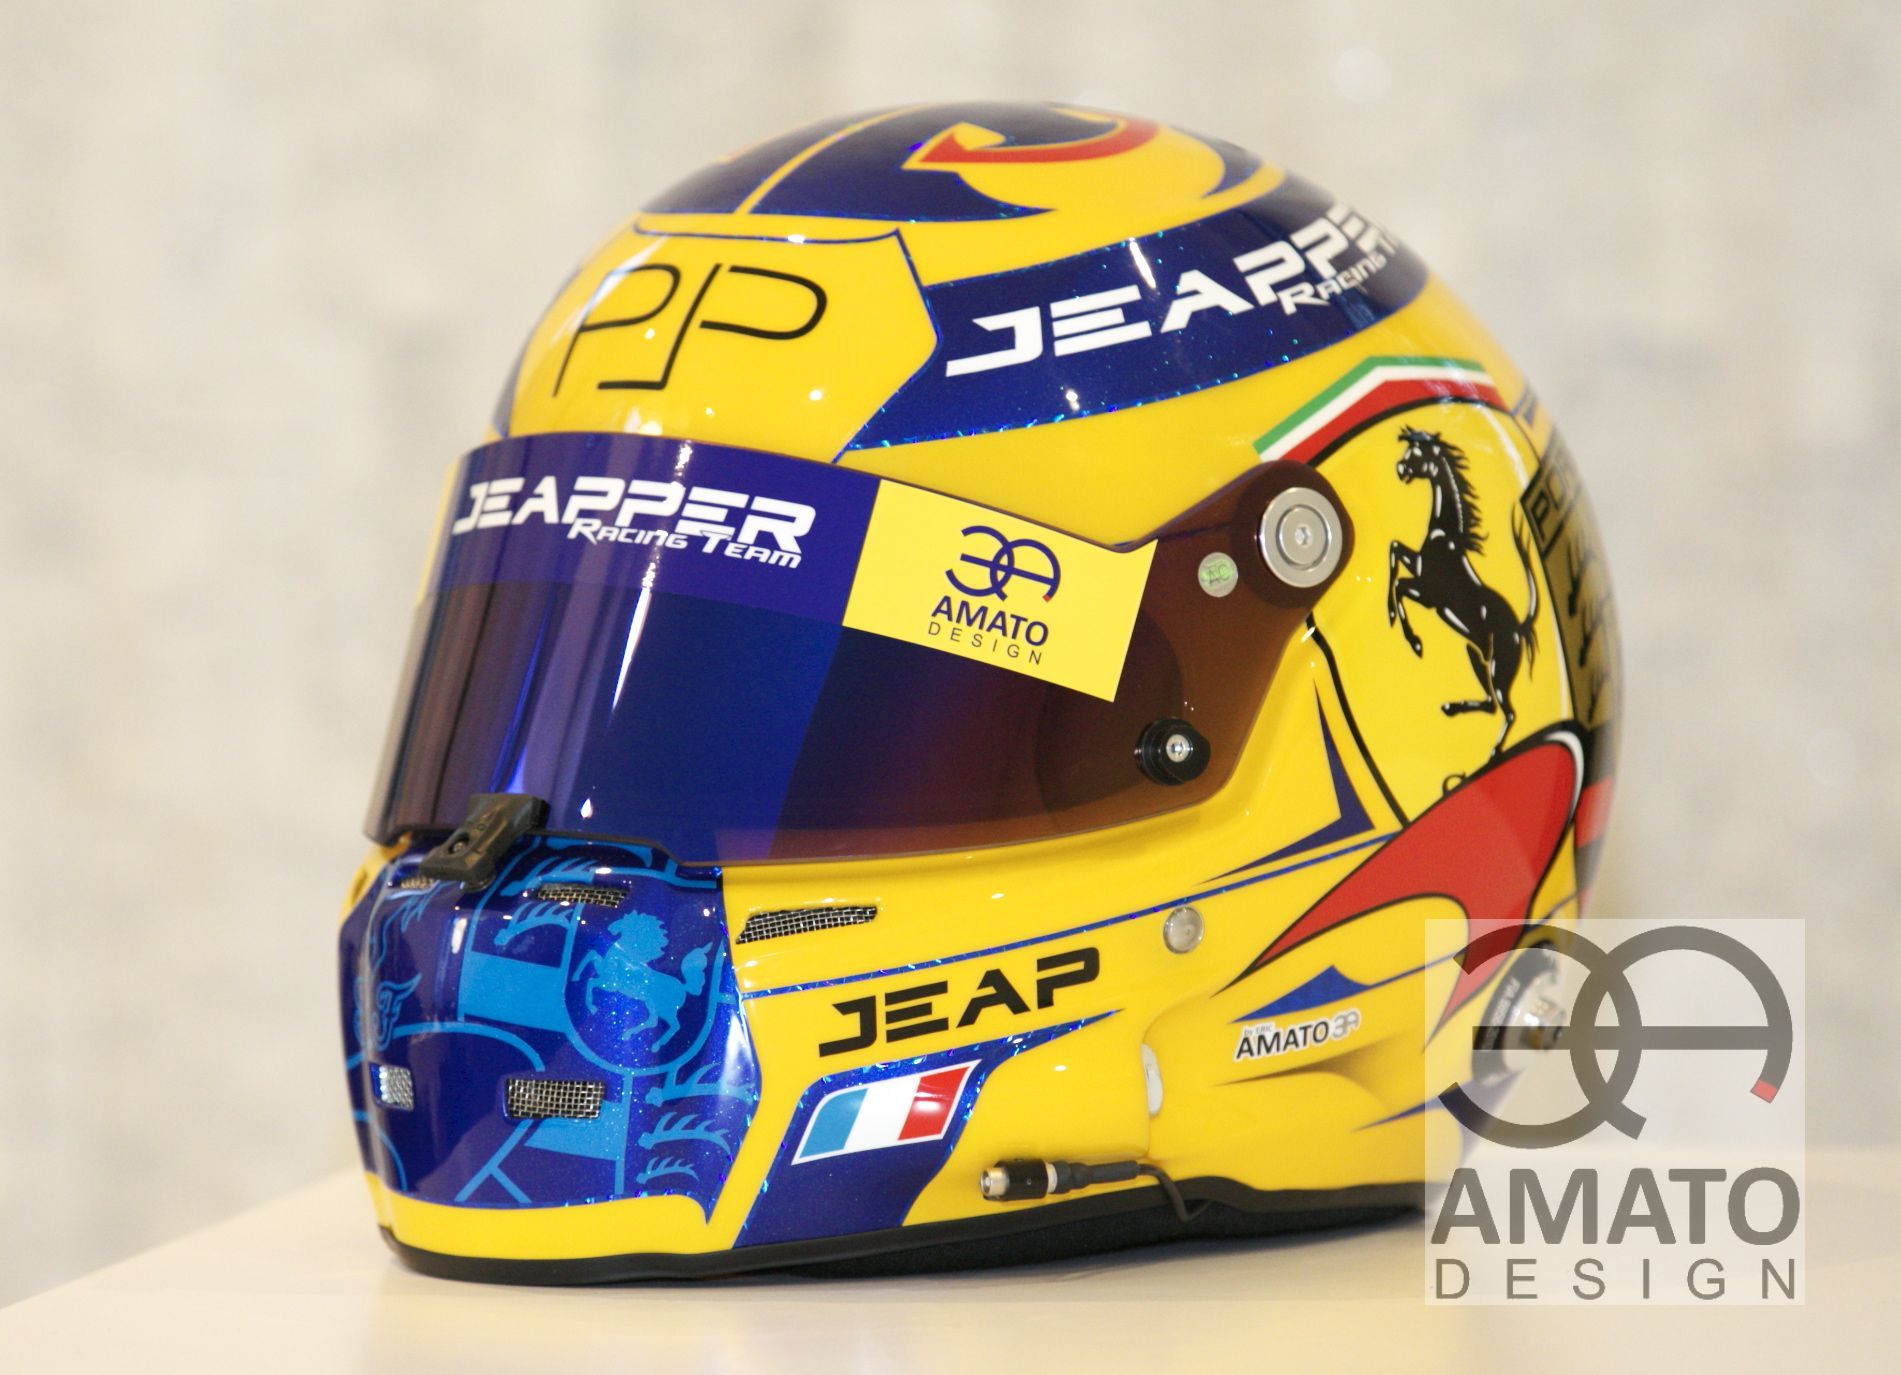 CASQUE AMATO DESIGN JEAP